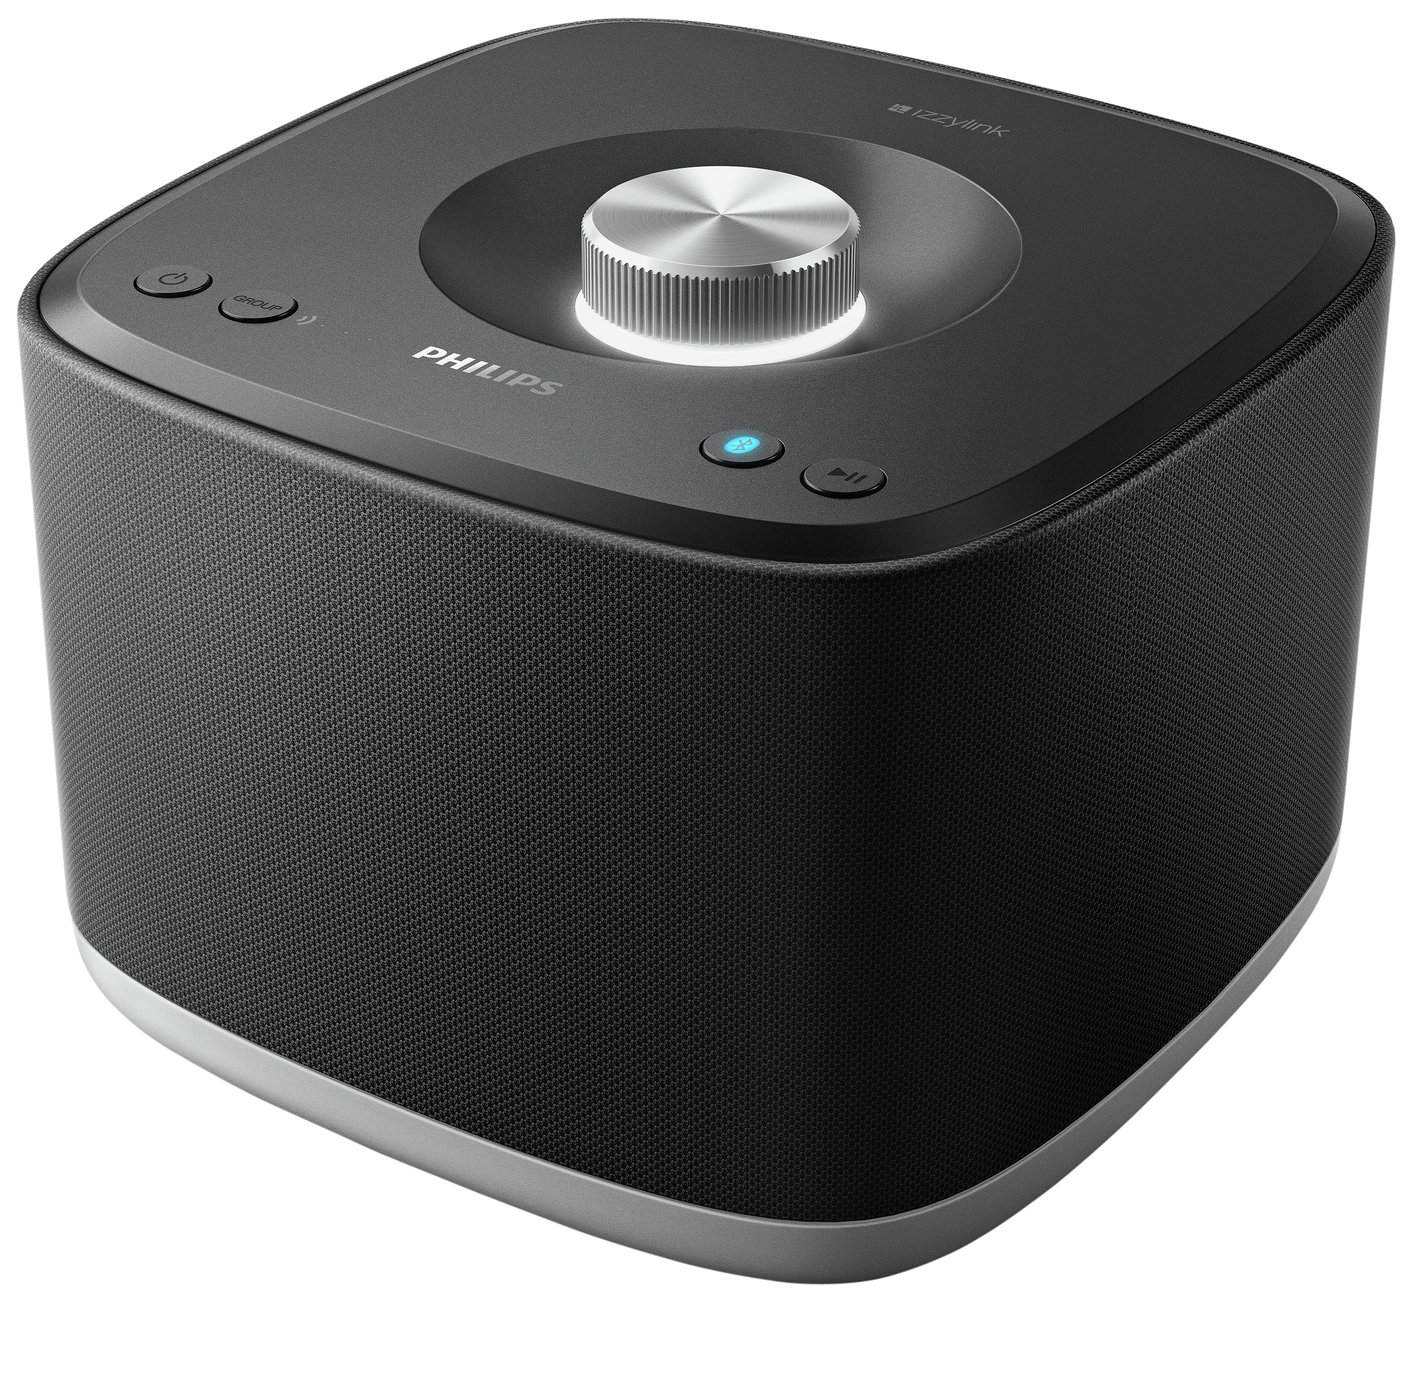 izzy-multiroom-wireless-speaker-black